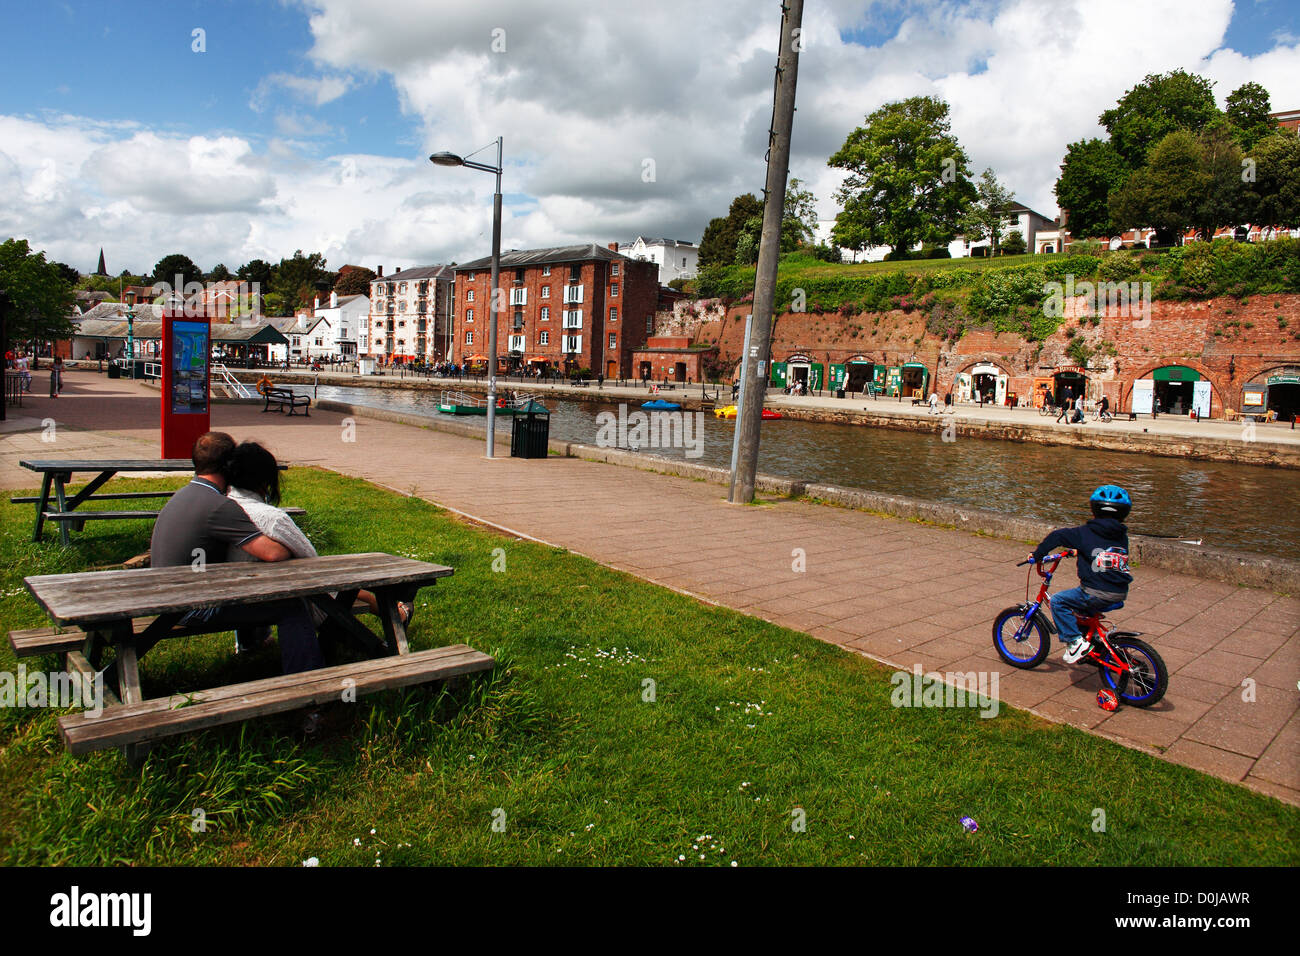 A child cycles on the towpath beside Exeter canal. - Stock Image